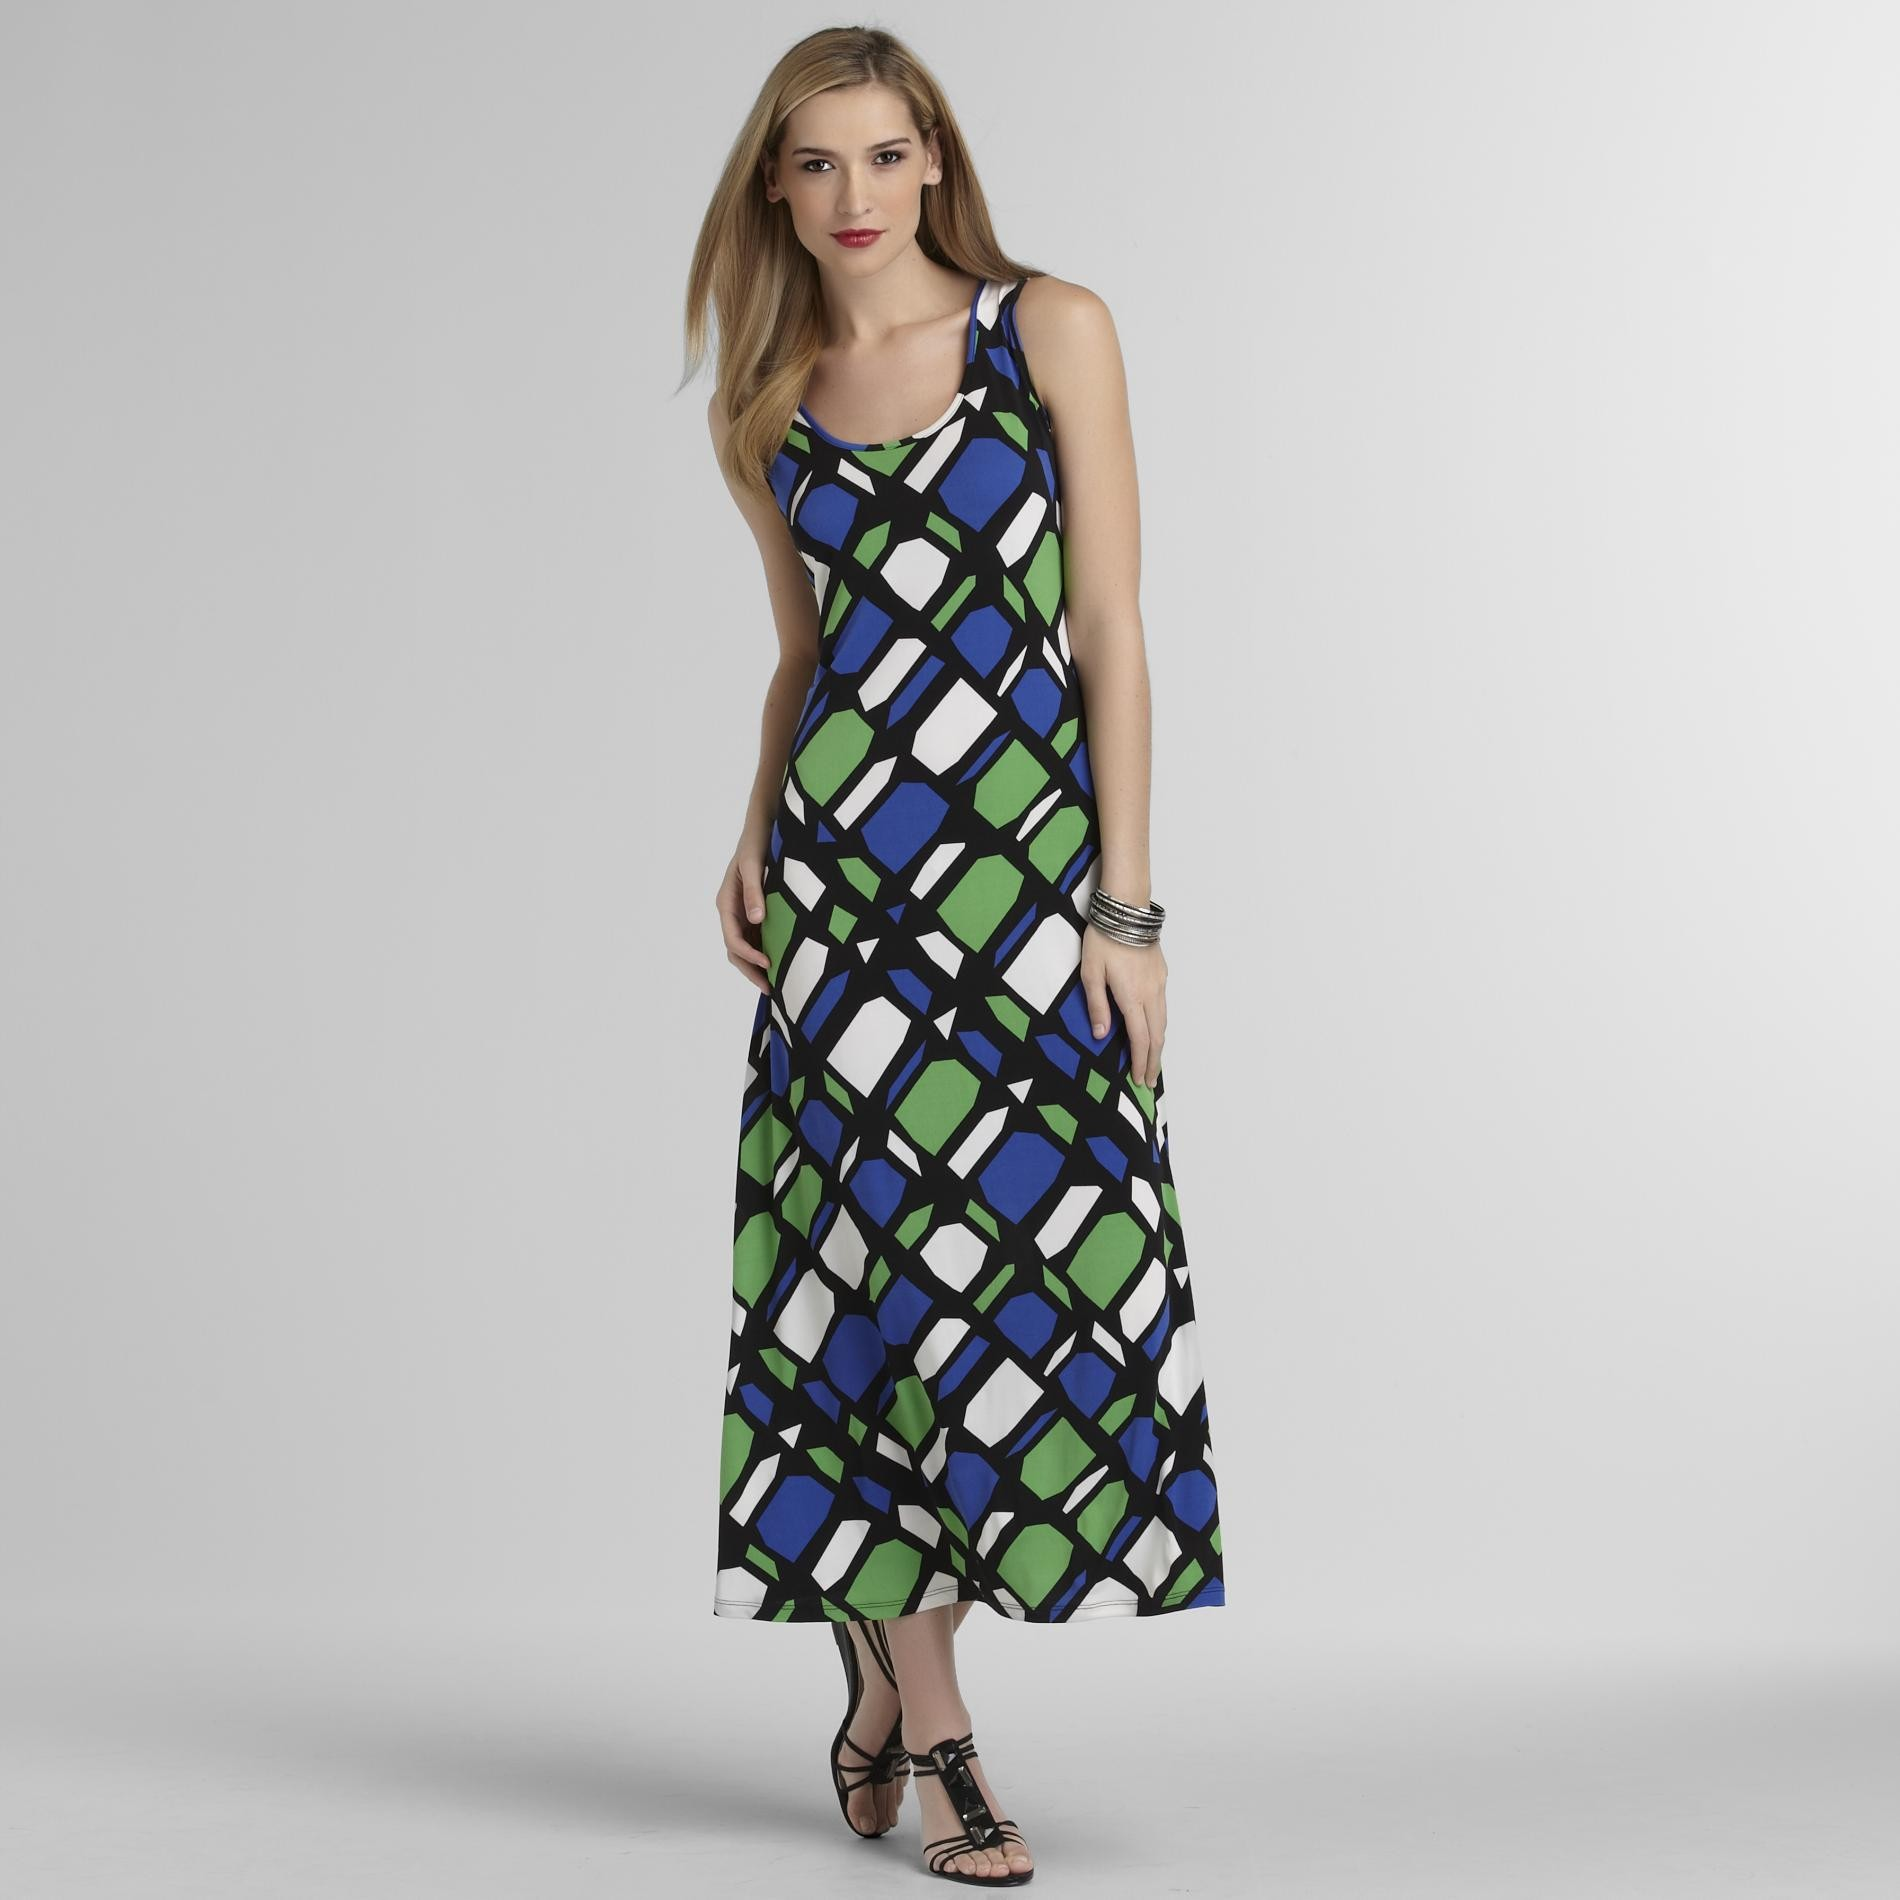 JBS Women's Sleeveless Maxi Dress at Sears.com